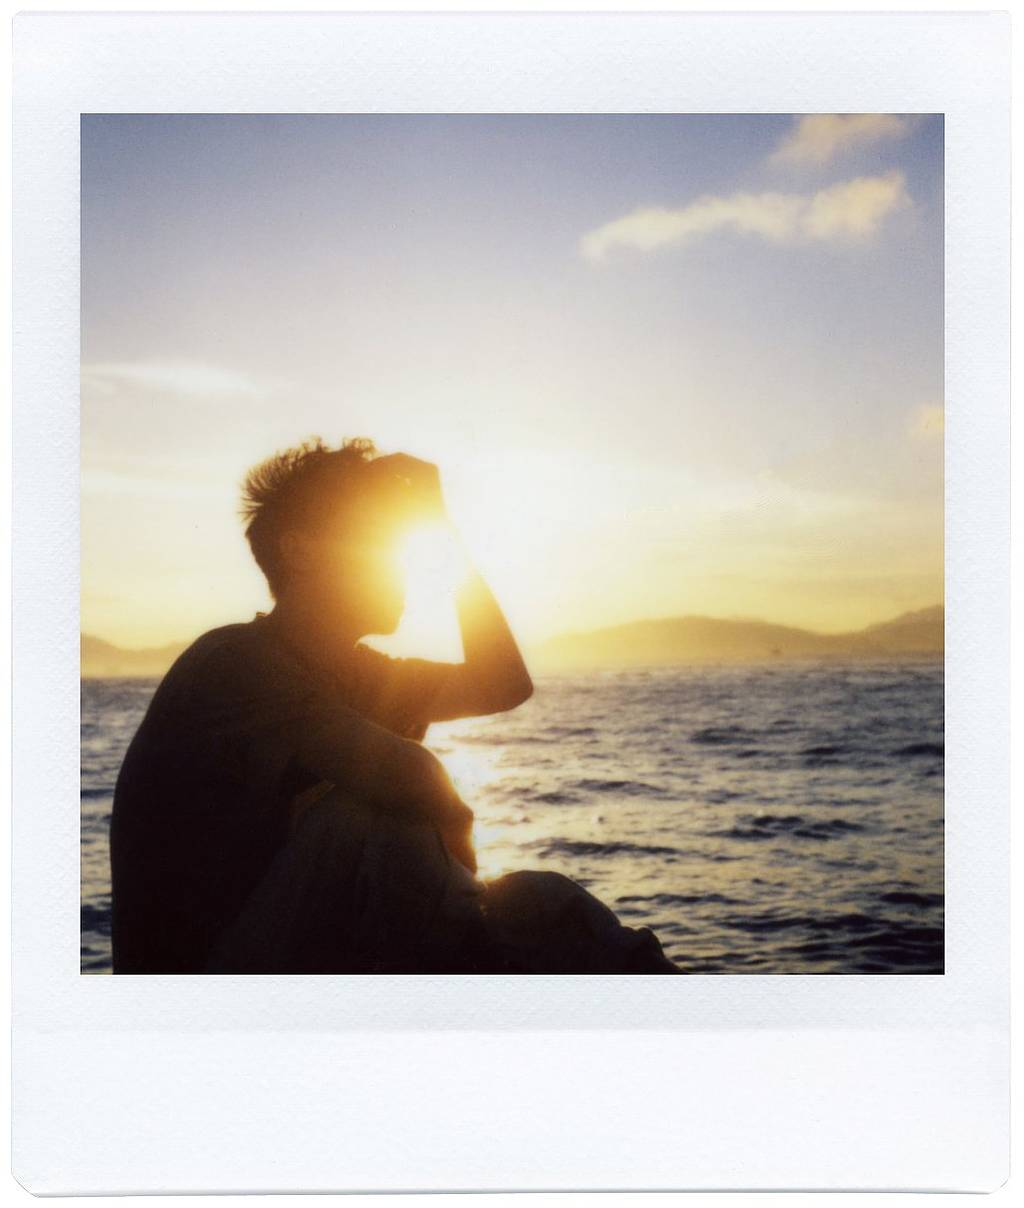 Lomo'Instant Square: On the Spur of the Moment